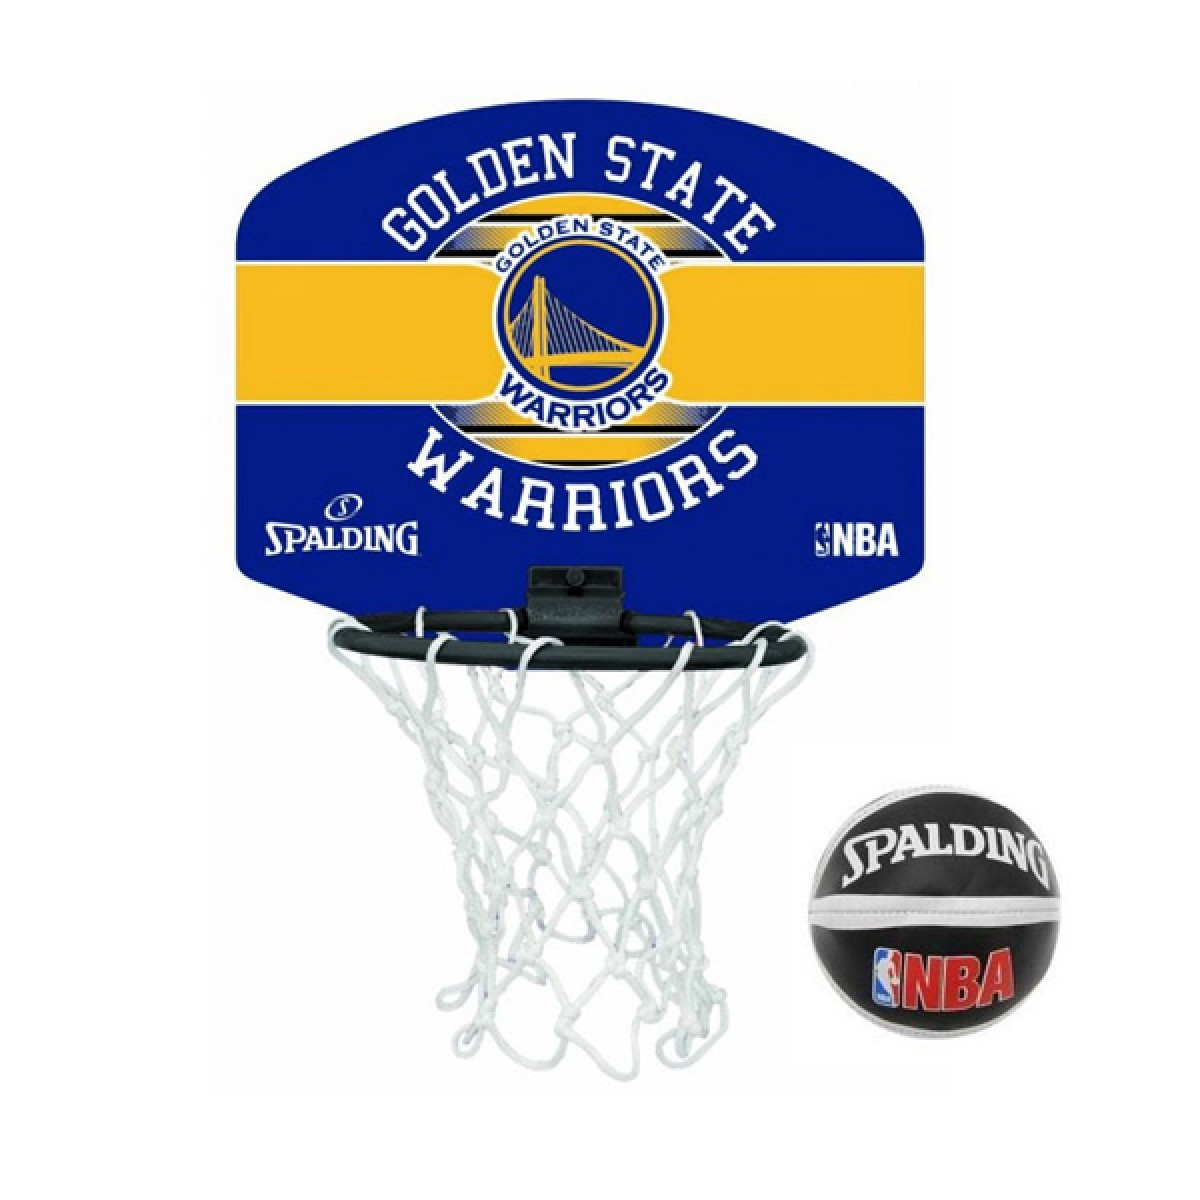 Spalding NBA Miniboards GSW